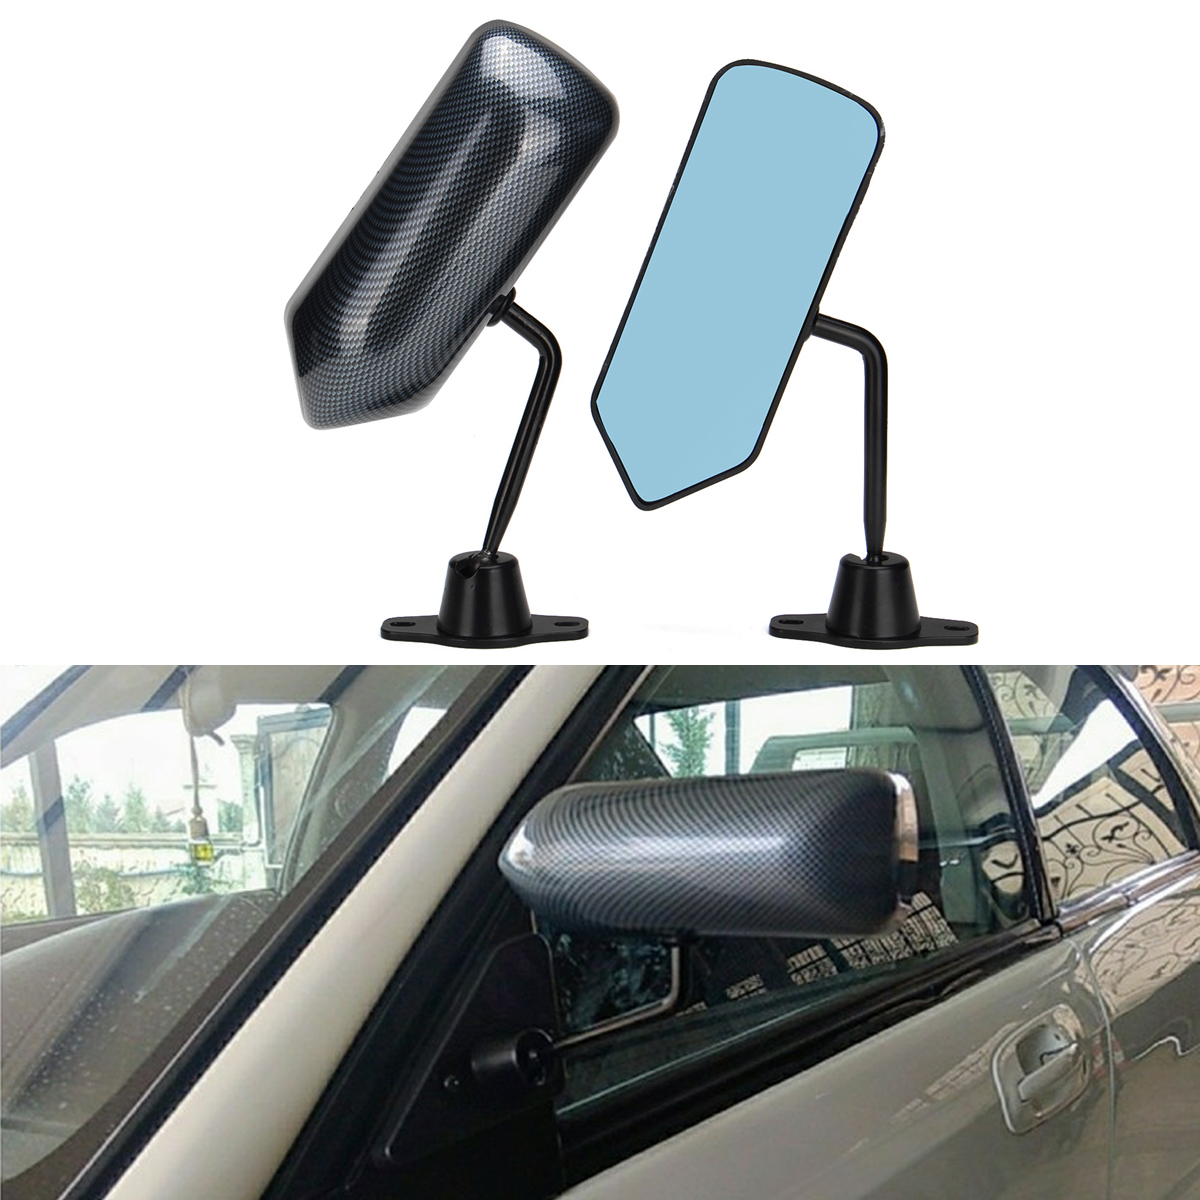 Top Racing Universal Rearview Mirror Car Modification California Zoom Spion Tengah Carbon 1 Pair Mobil Kaca Serat Karbon Autos Biru Balap Sisi Wide